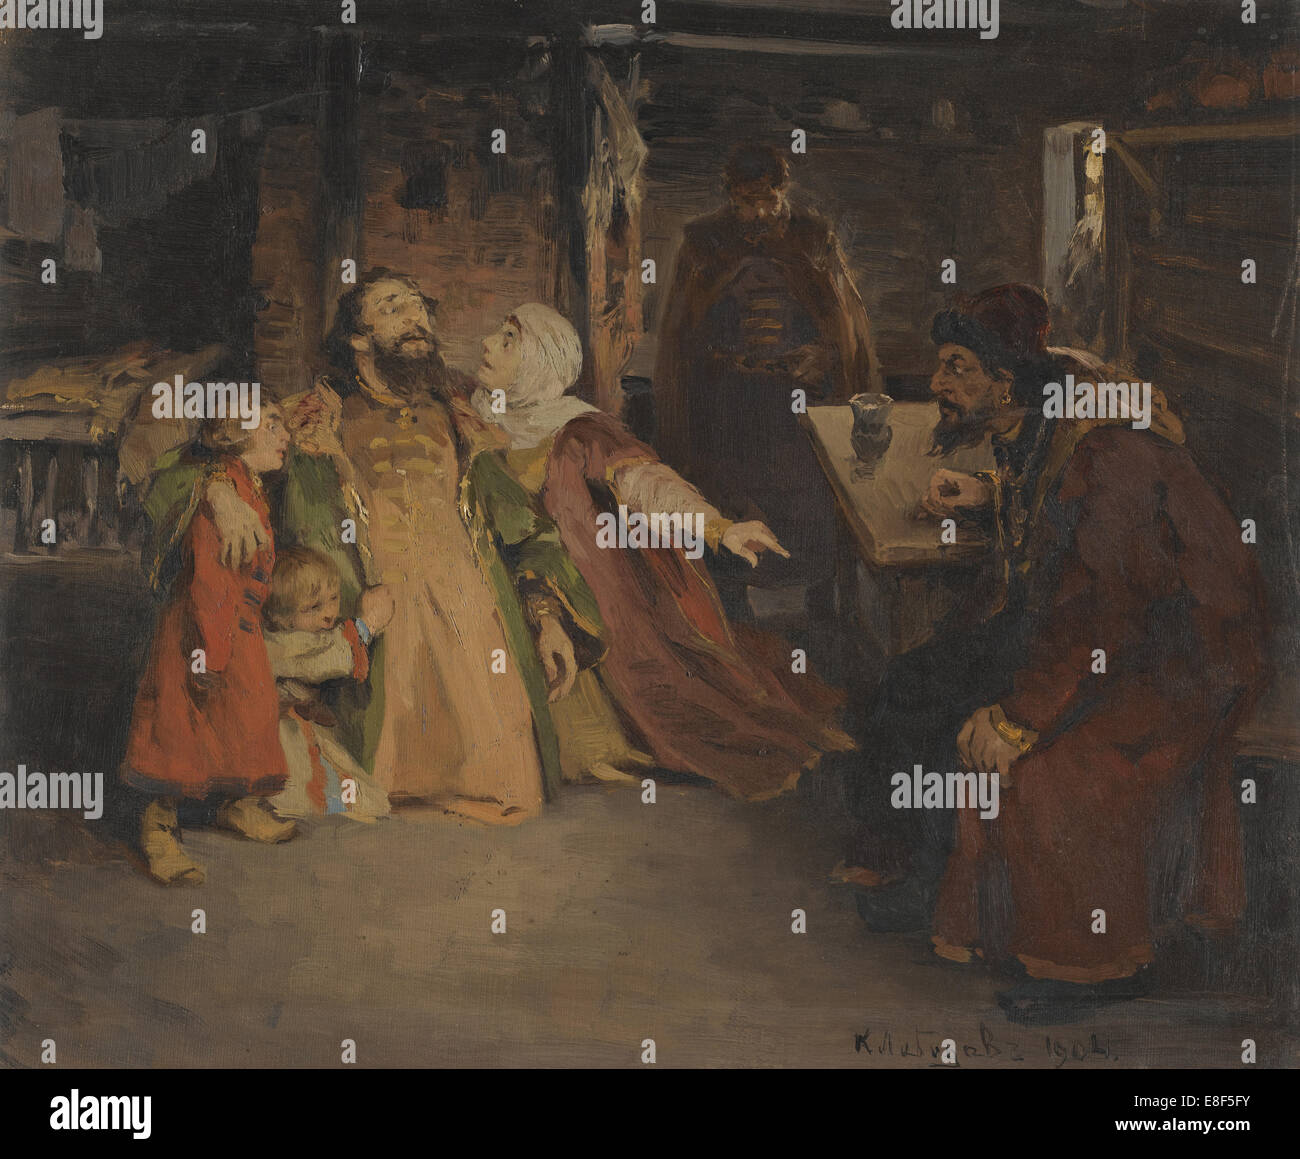 Ivan the Terrible. Artist: Lebedev, Klavdi Vasilyevich (1852-1916) Stock Photo